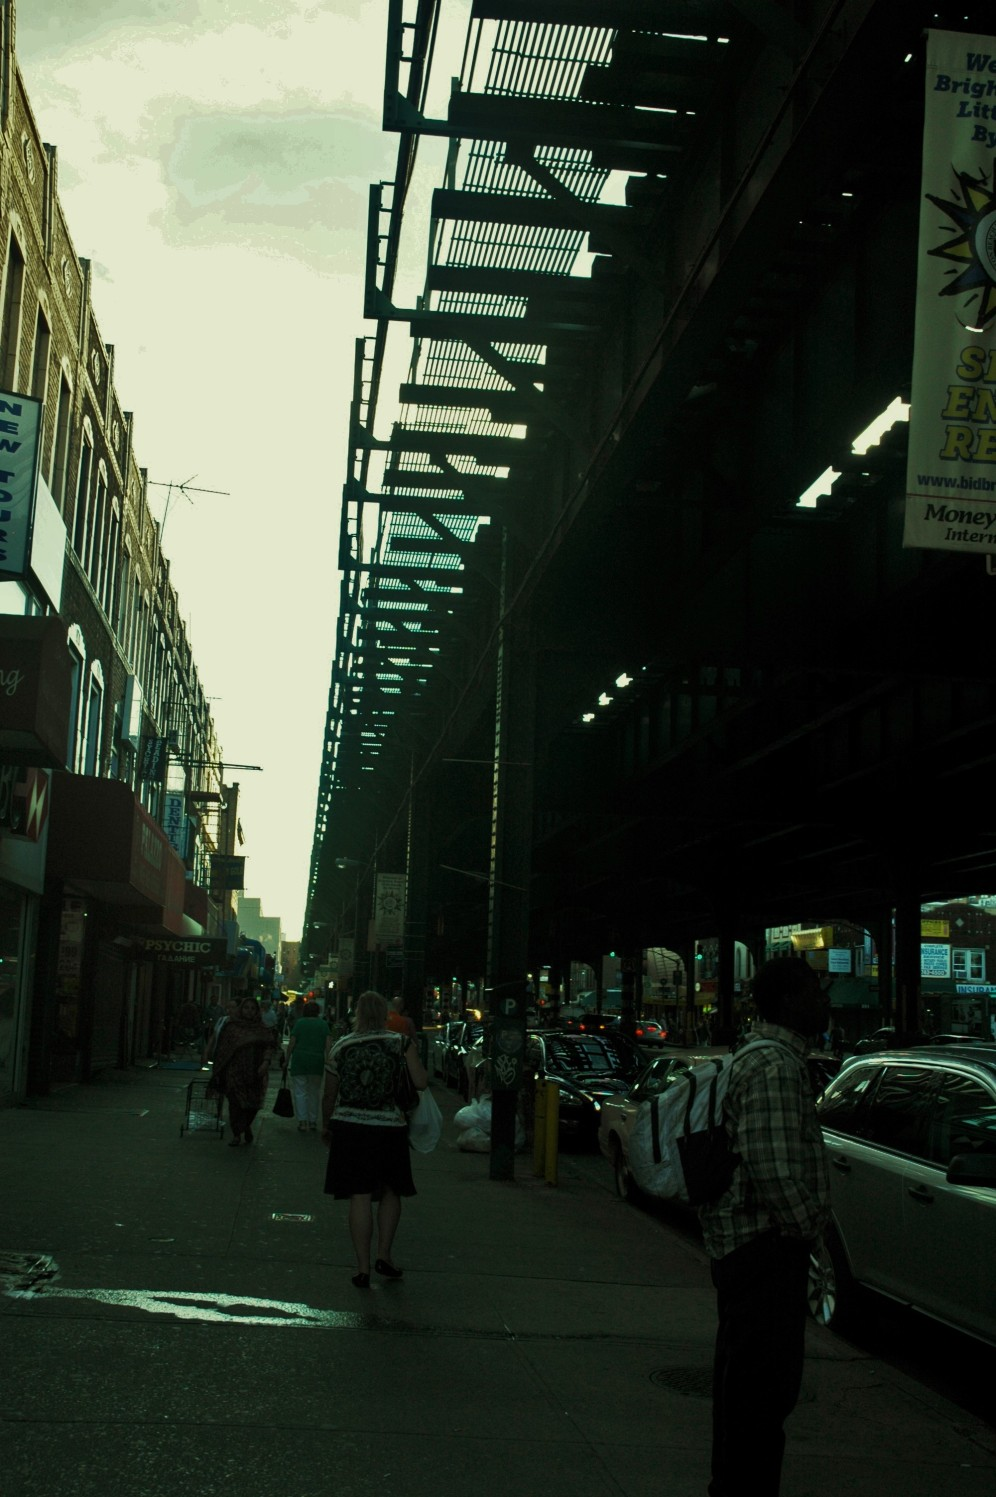 Less common that they once were, elevated subway tracks still rumble above some neighborhoods